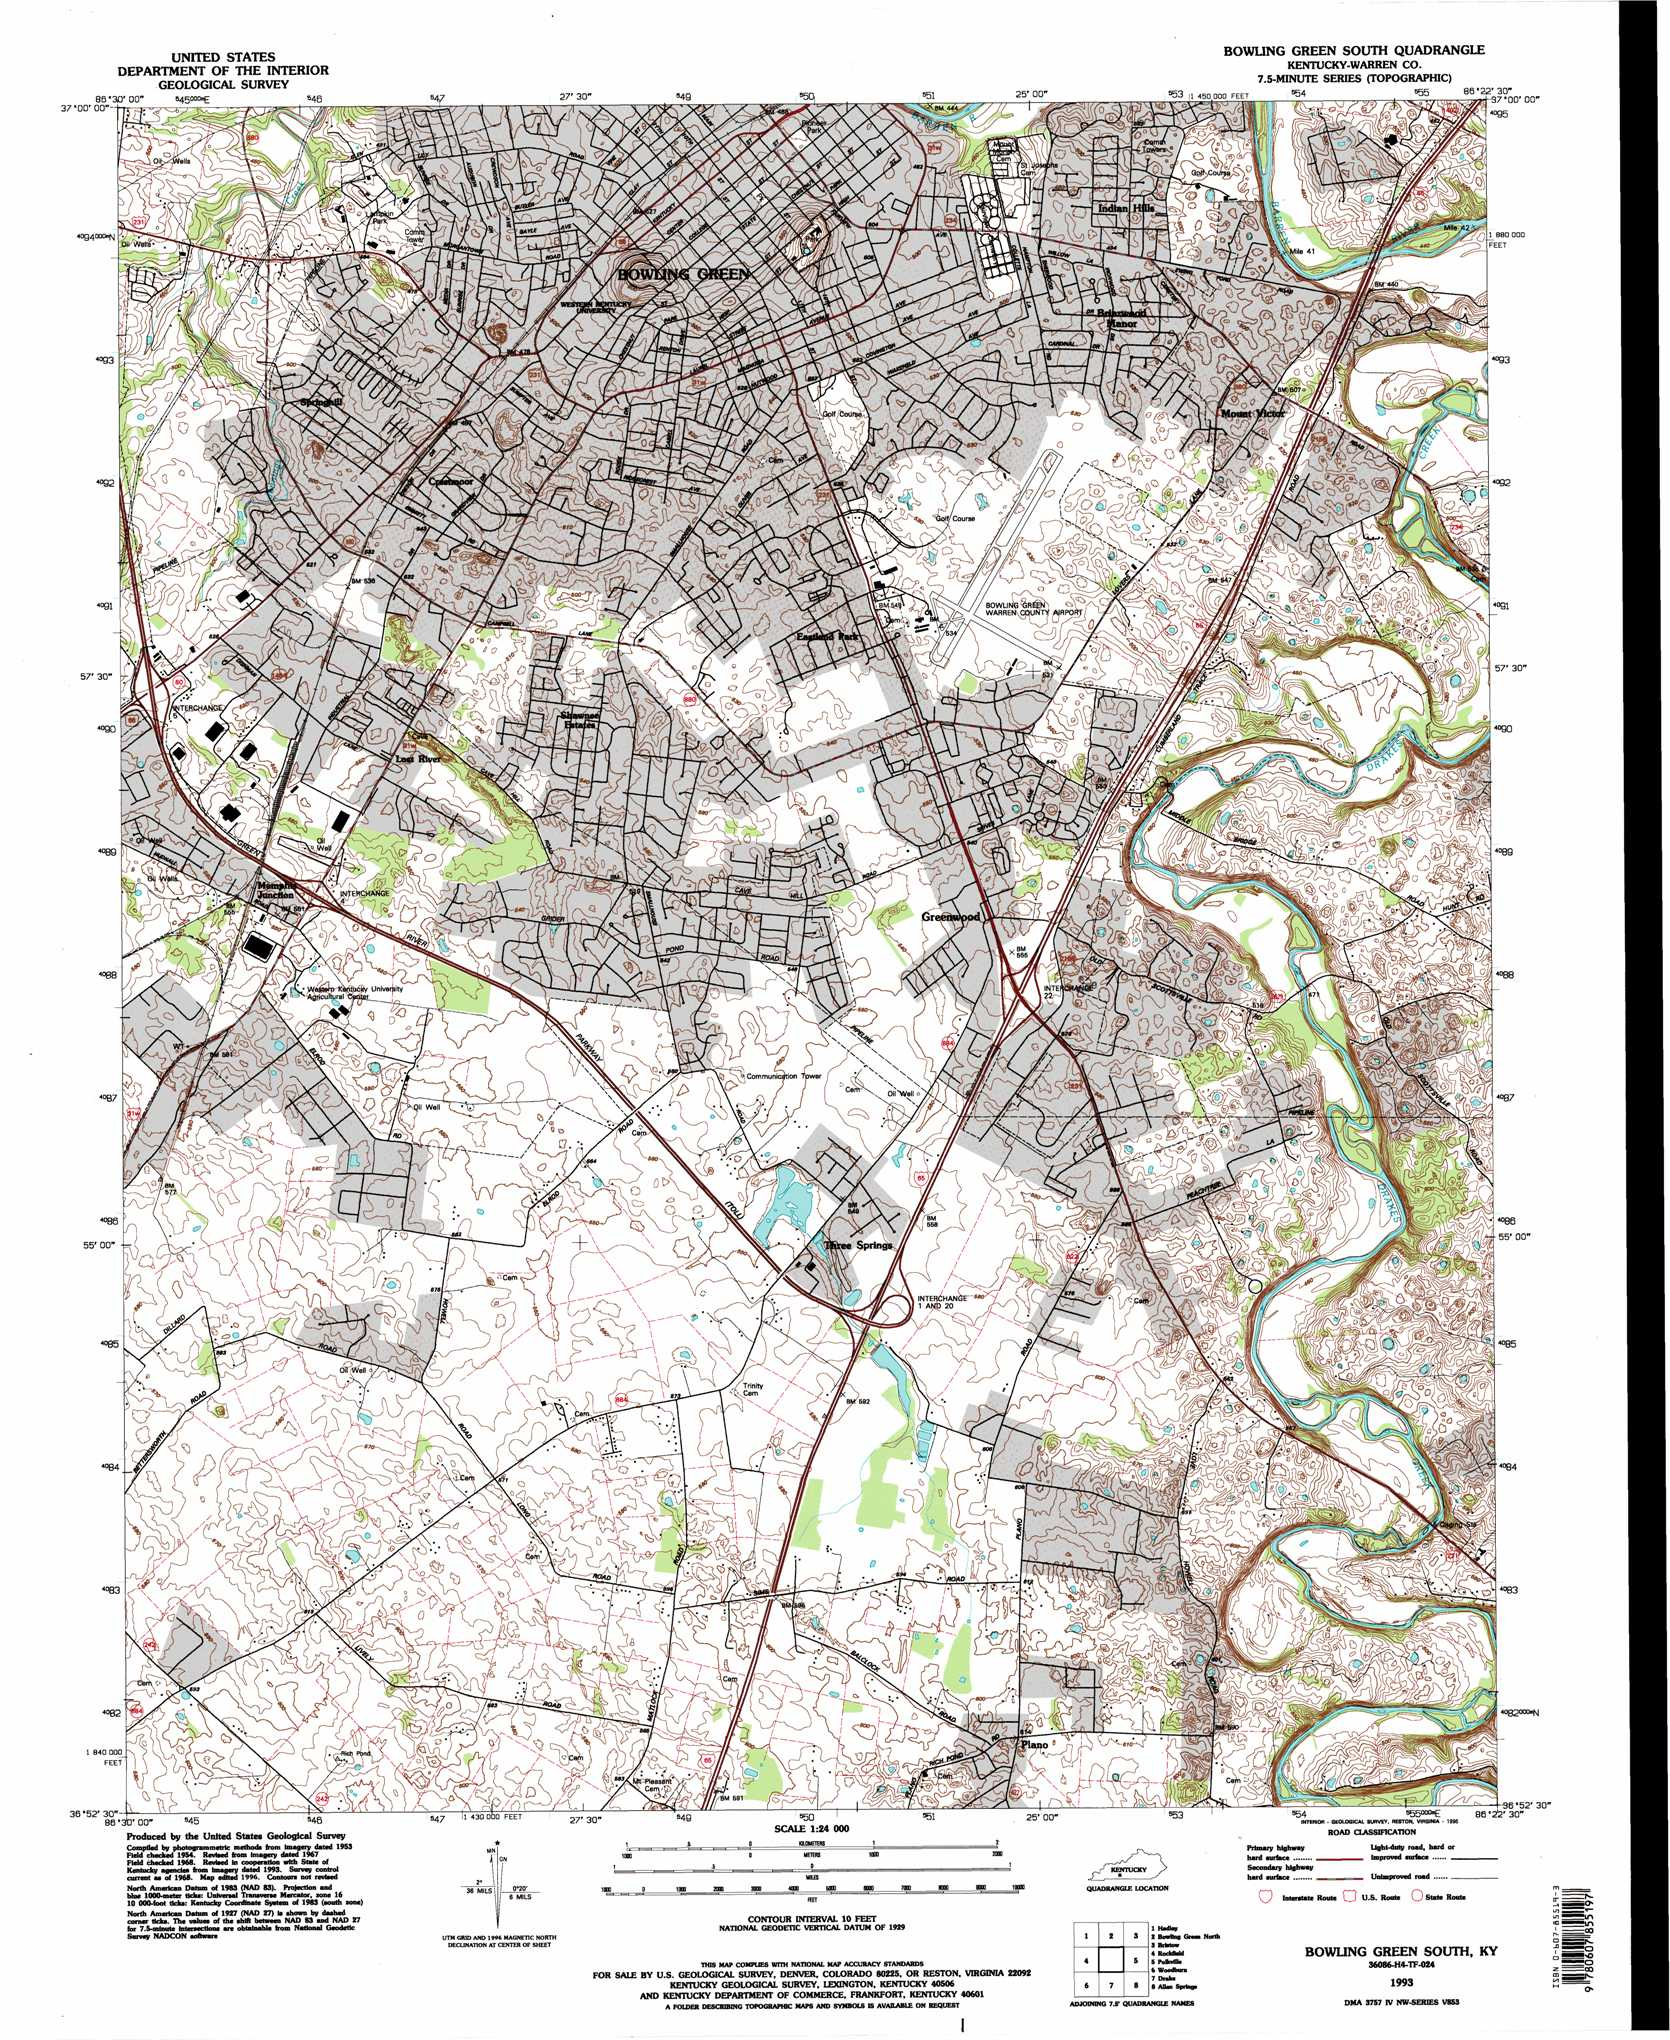 Bowling Green South Topographic Map KY  USGS Topo Quad